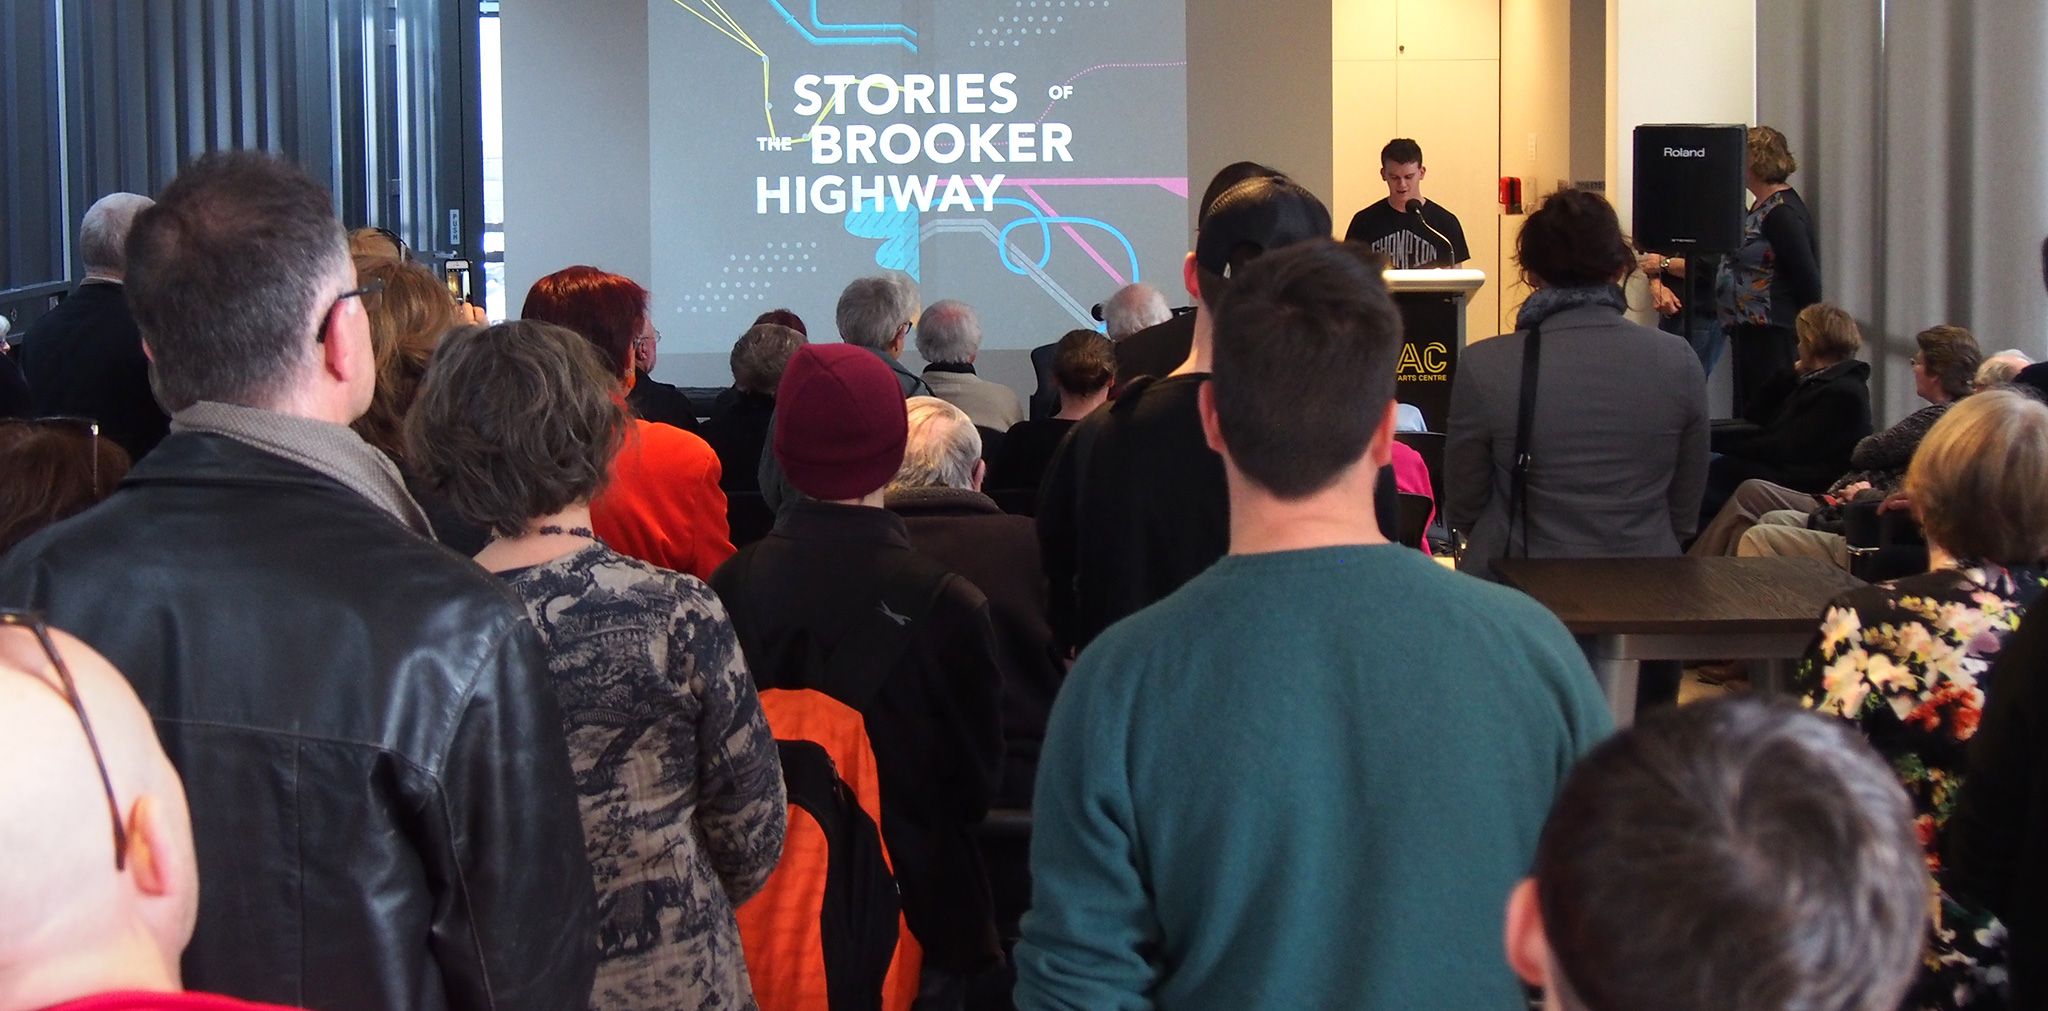 Claremont College student James Finearty reads his piece, 'The Elwick Drive-In', at the  Stories of the Brooker Highway  exhibition launch.